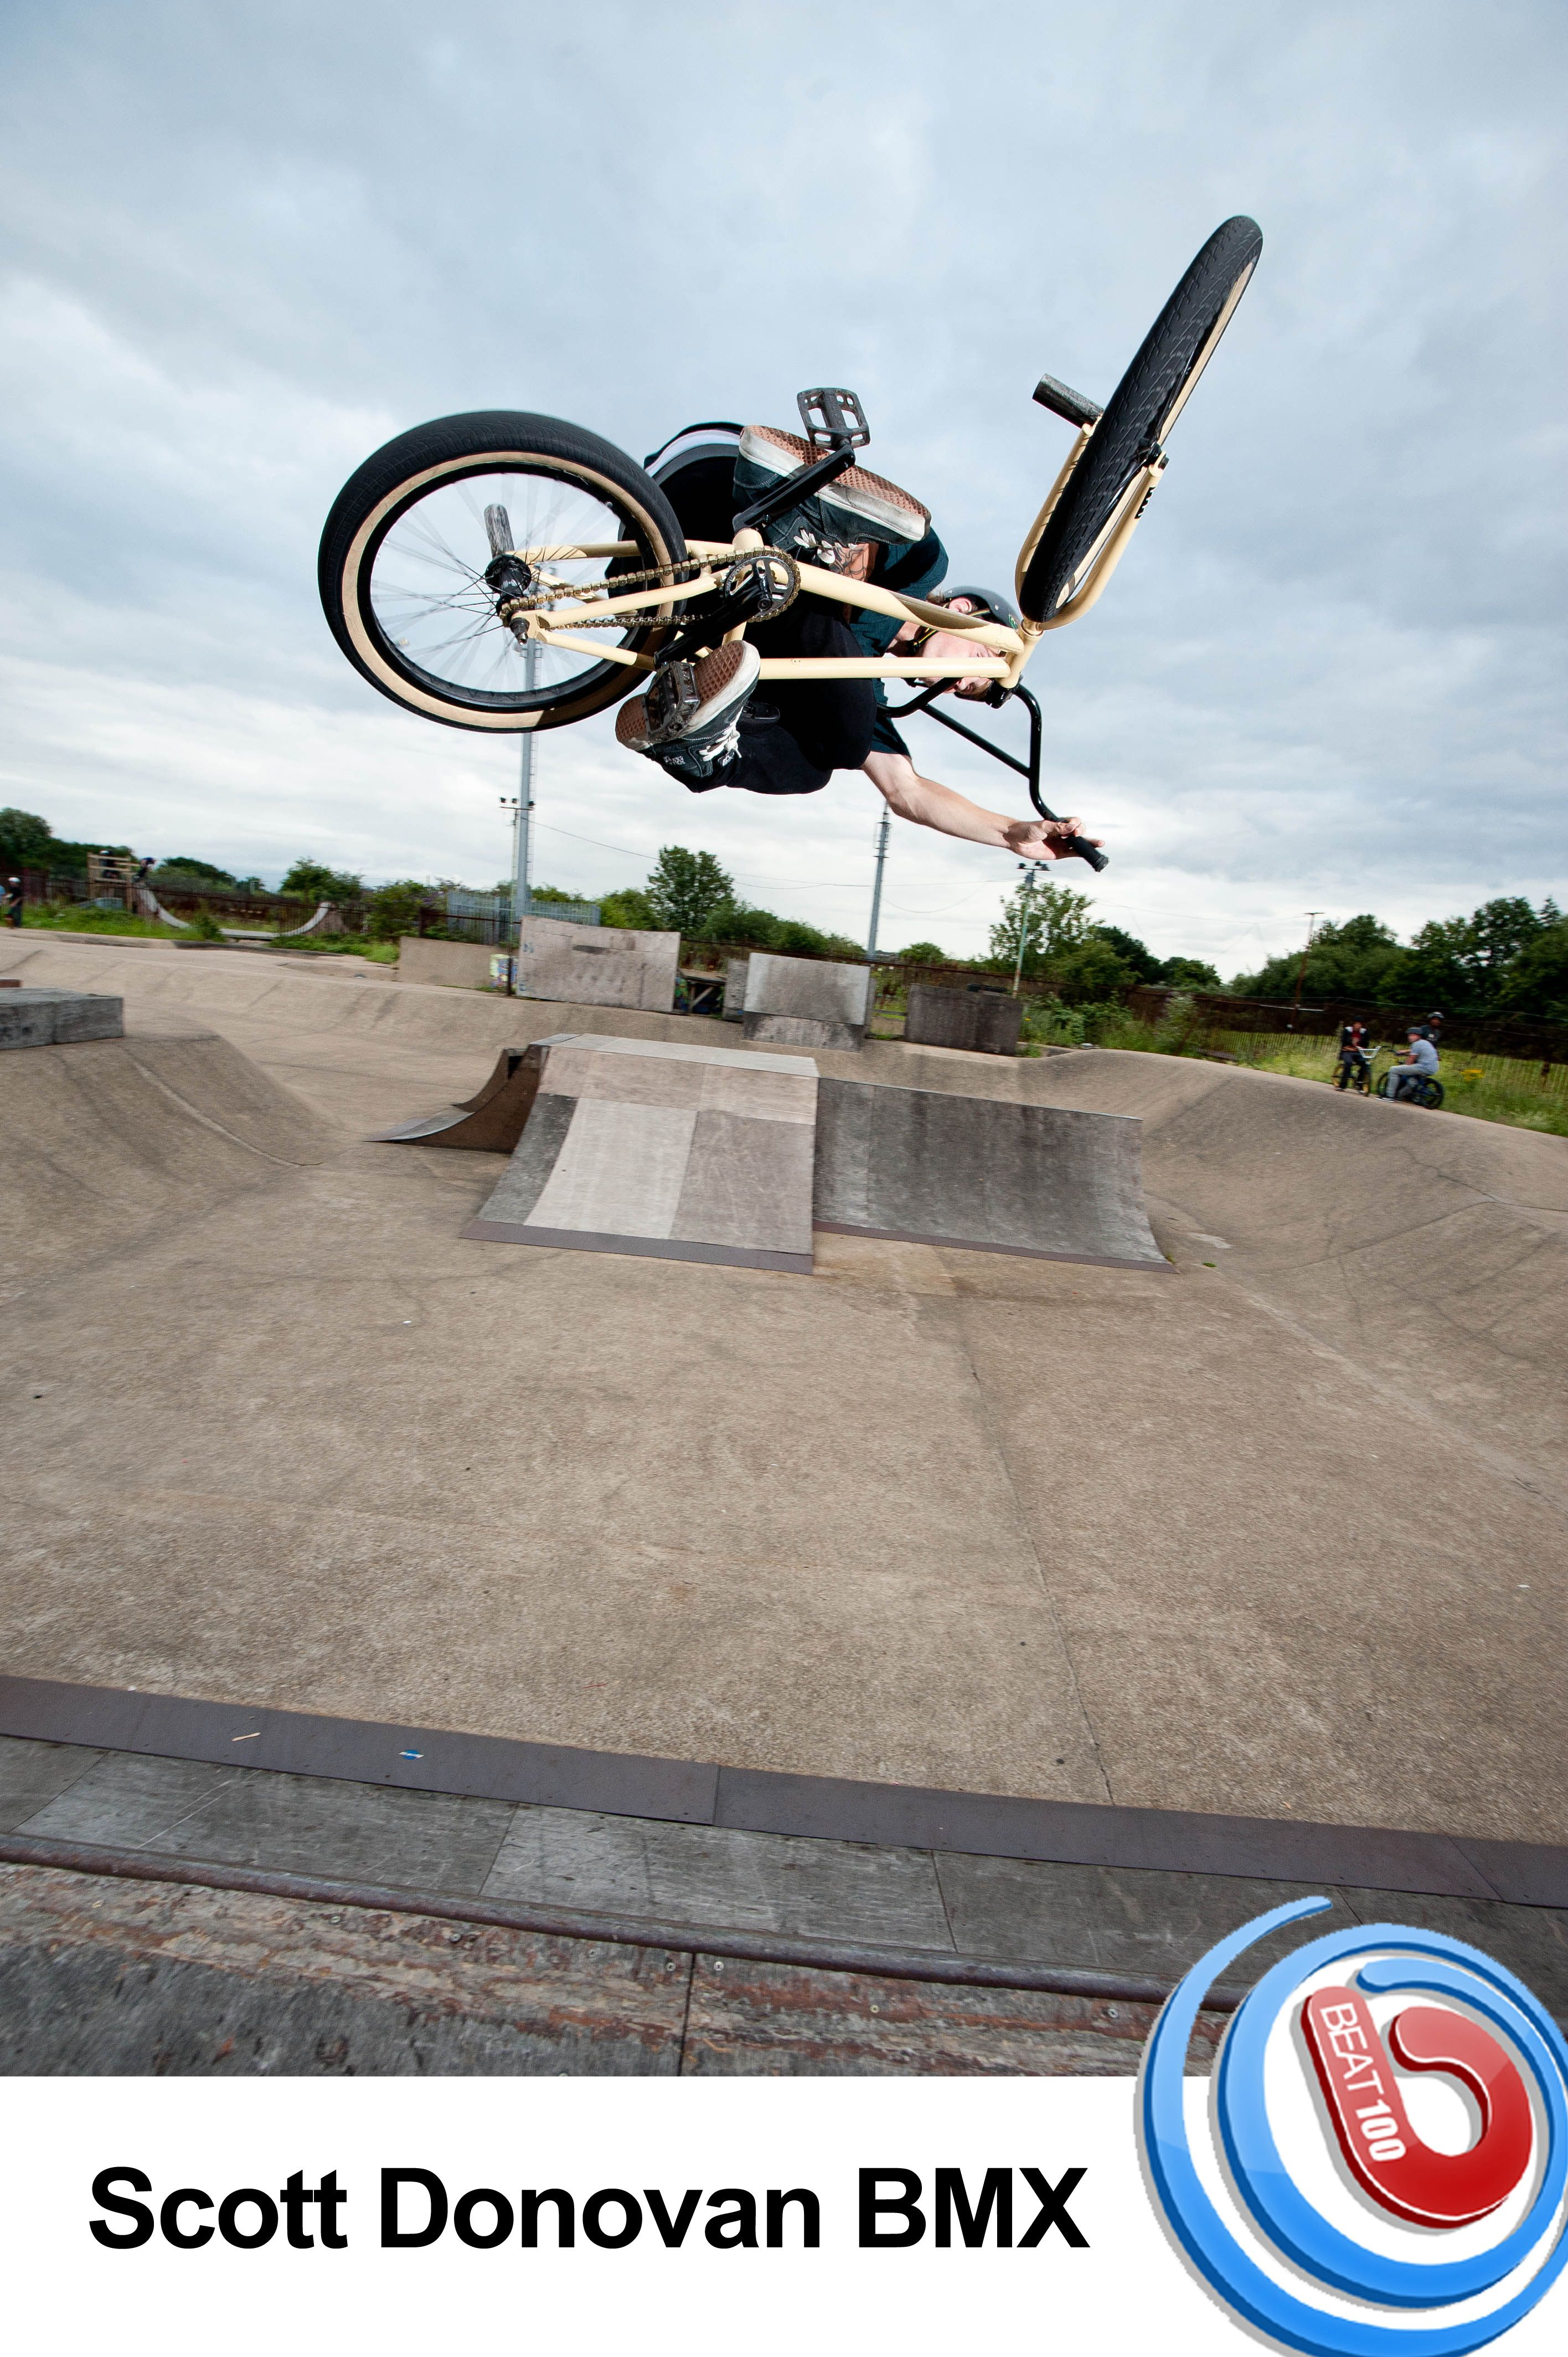 Scott Donovan is a BMX Rider from the UK, Scott is looking to become a pro BMX rider sometime soon. Check me out on. Click image to view video Beat100.com